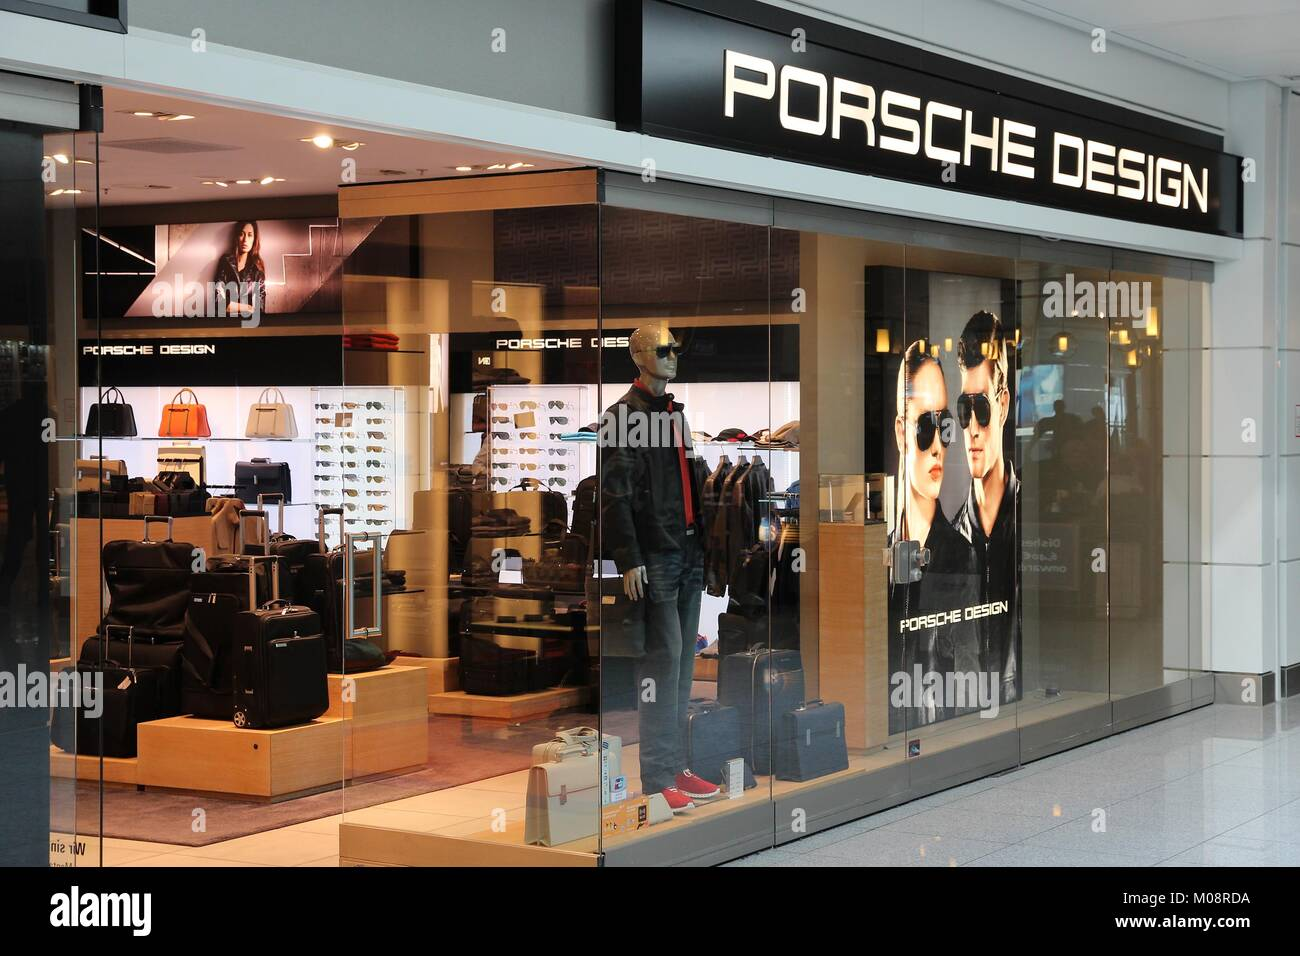 munich germany shopping area stock photos munich germany shopping area stock images alamy. Black Bedroom Furniture Sets. Home Design Ideas